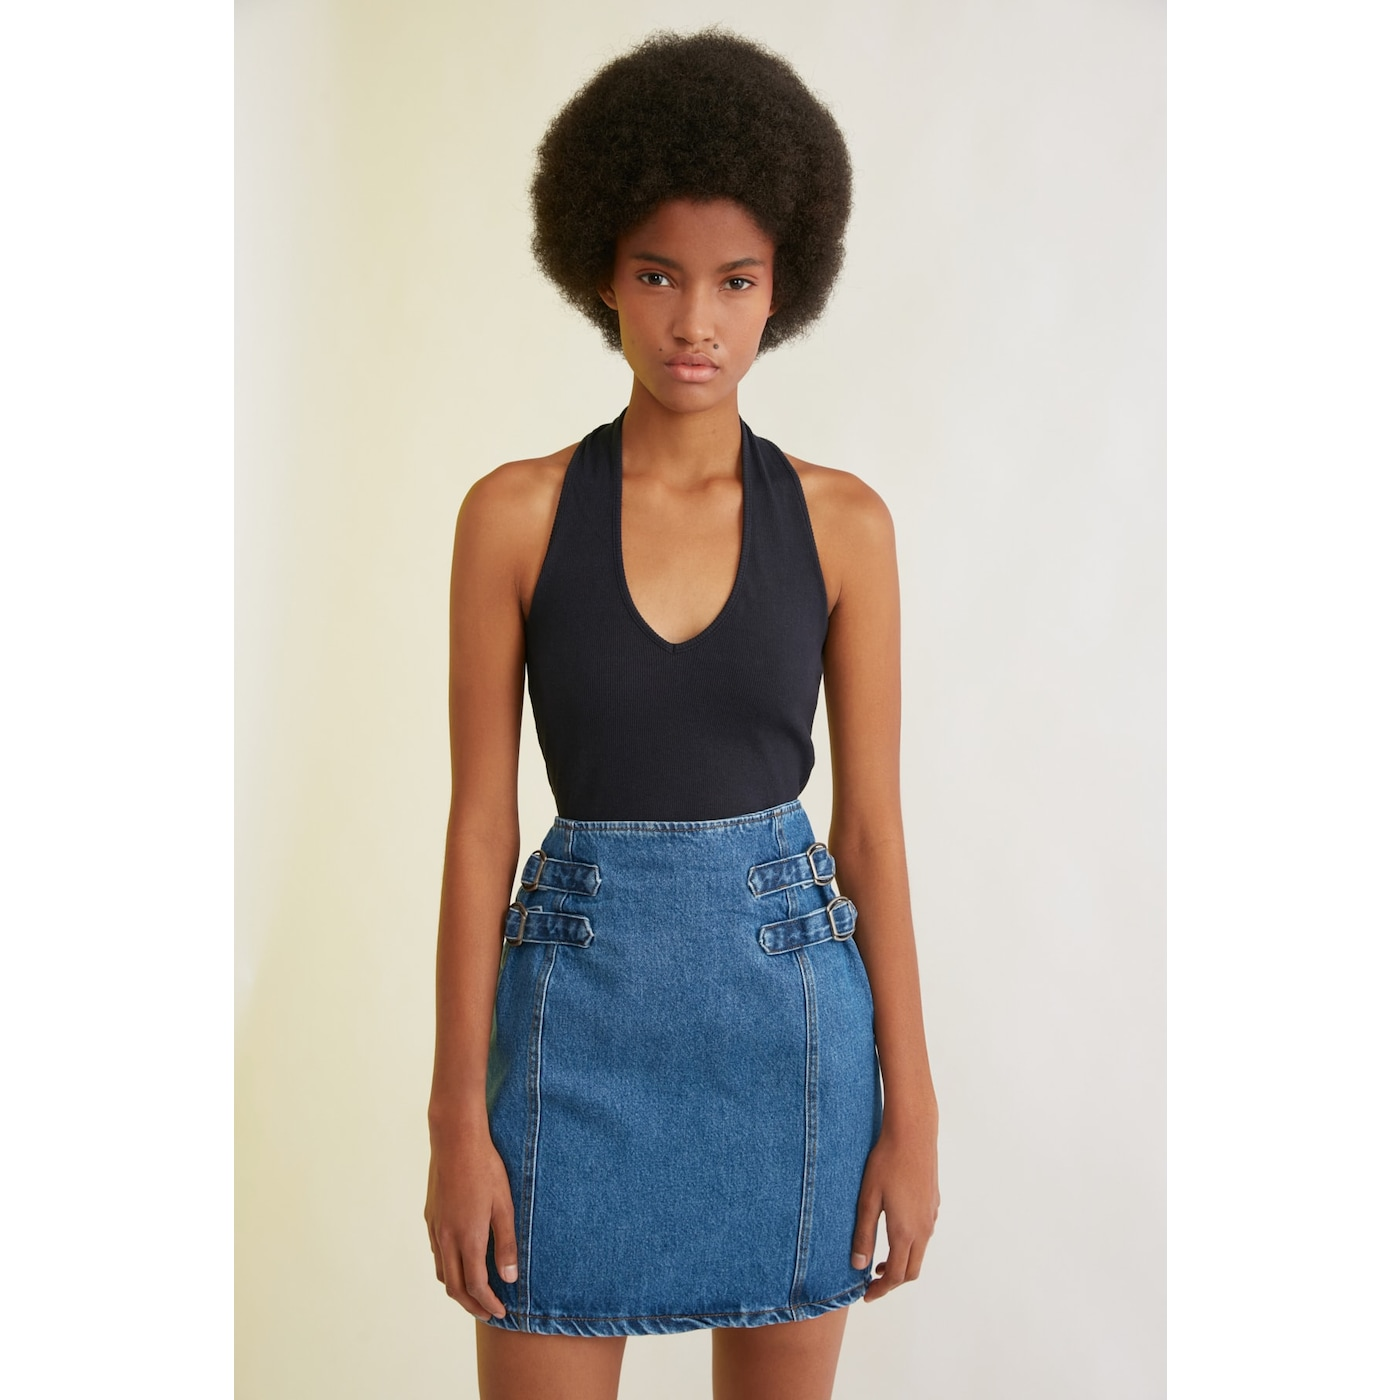 Trendyol Mini Denim Skirt WITH Blue Waist Buckle DetailING dámské Navy 38